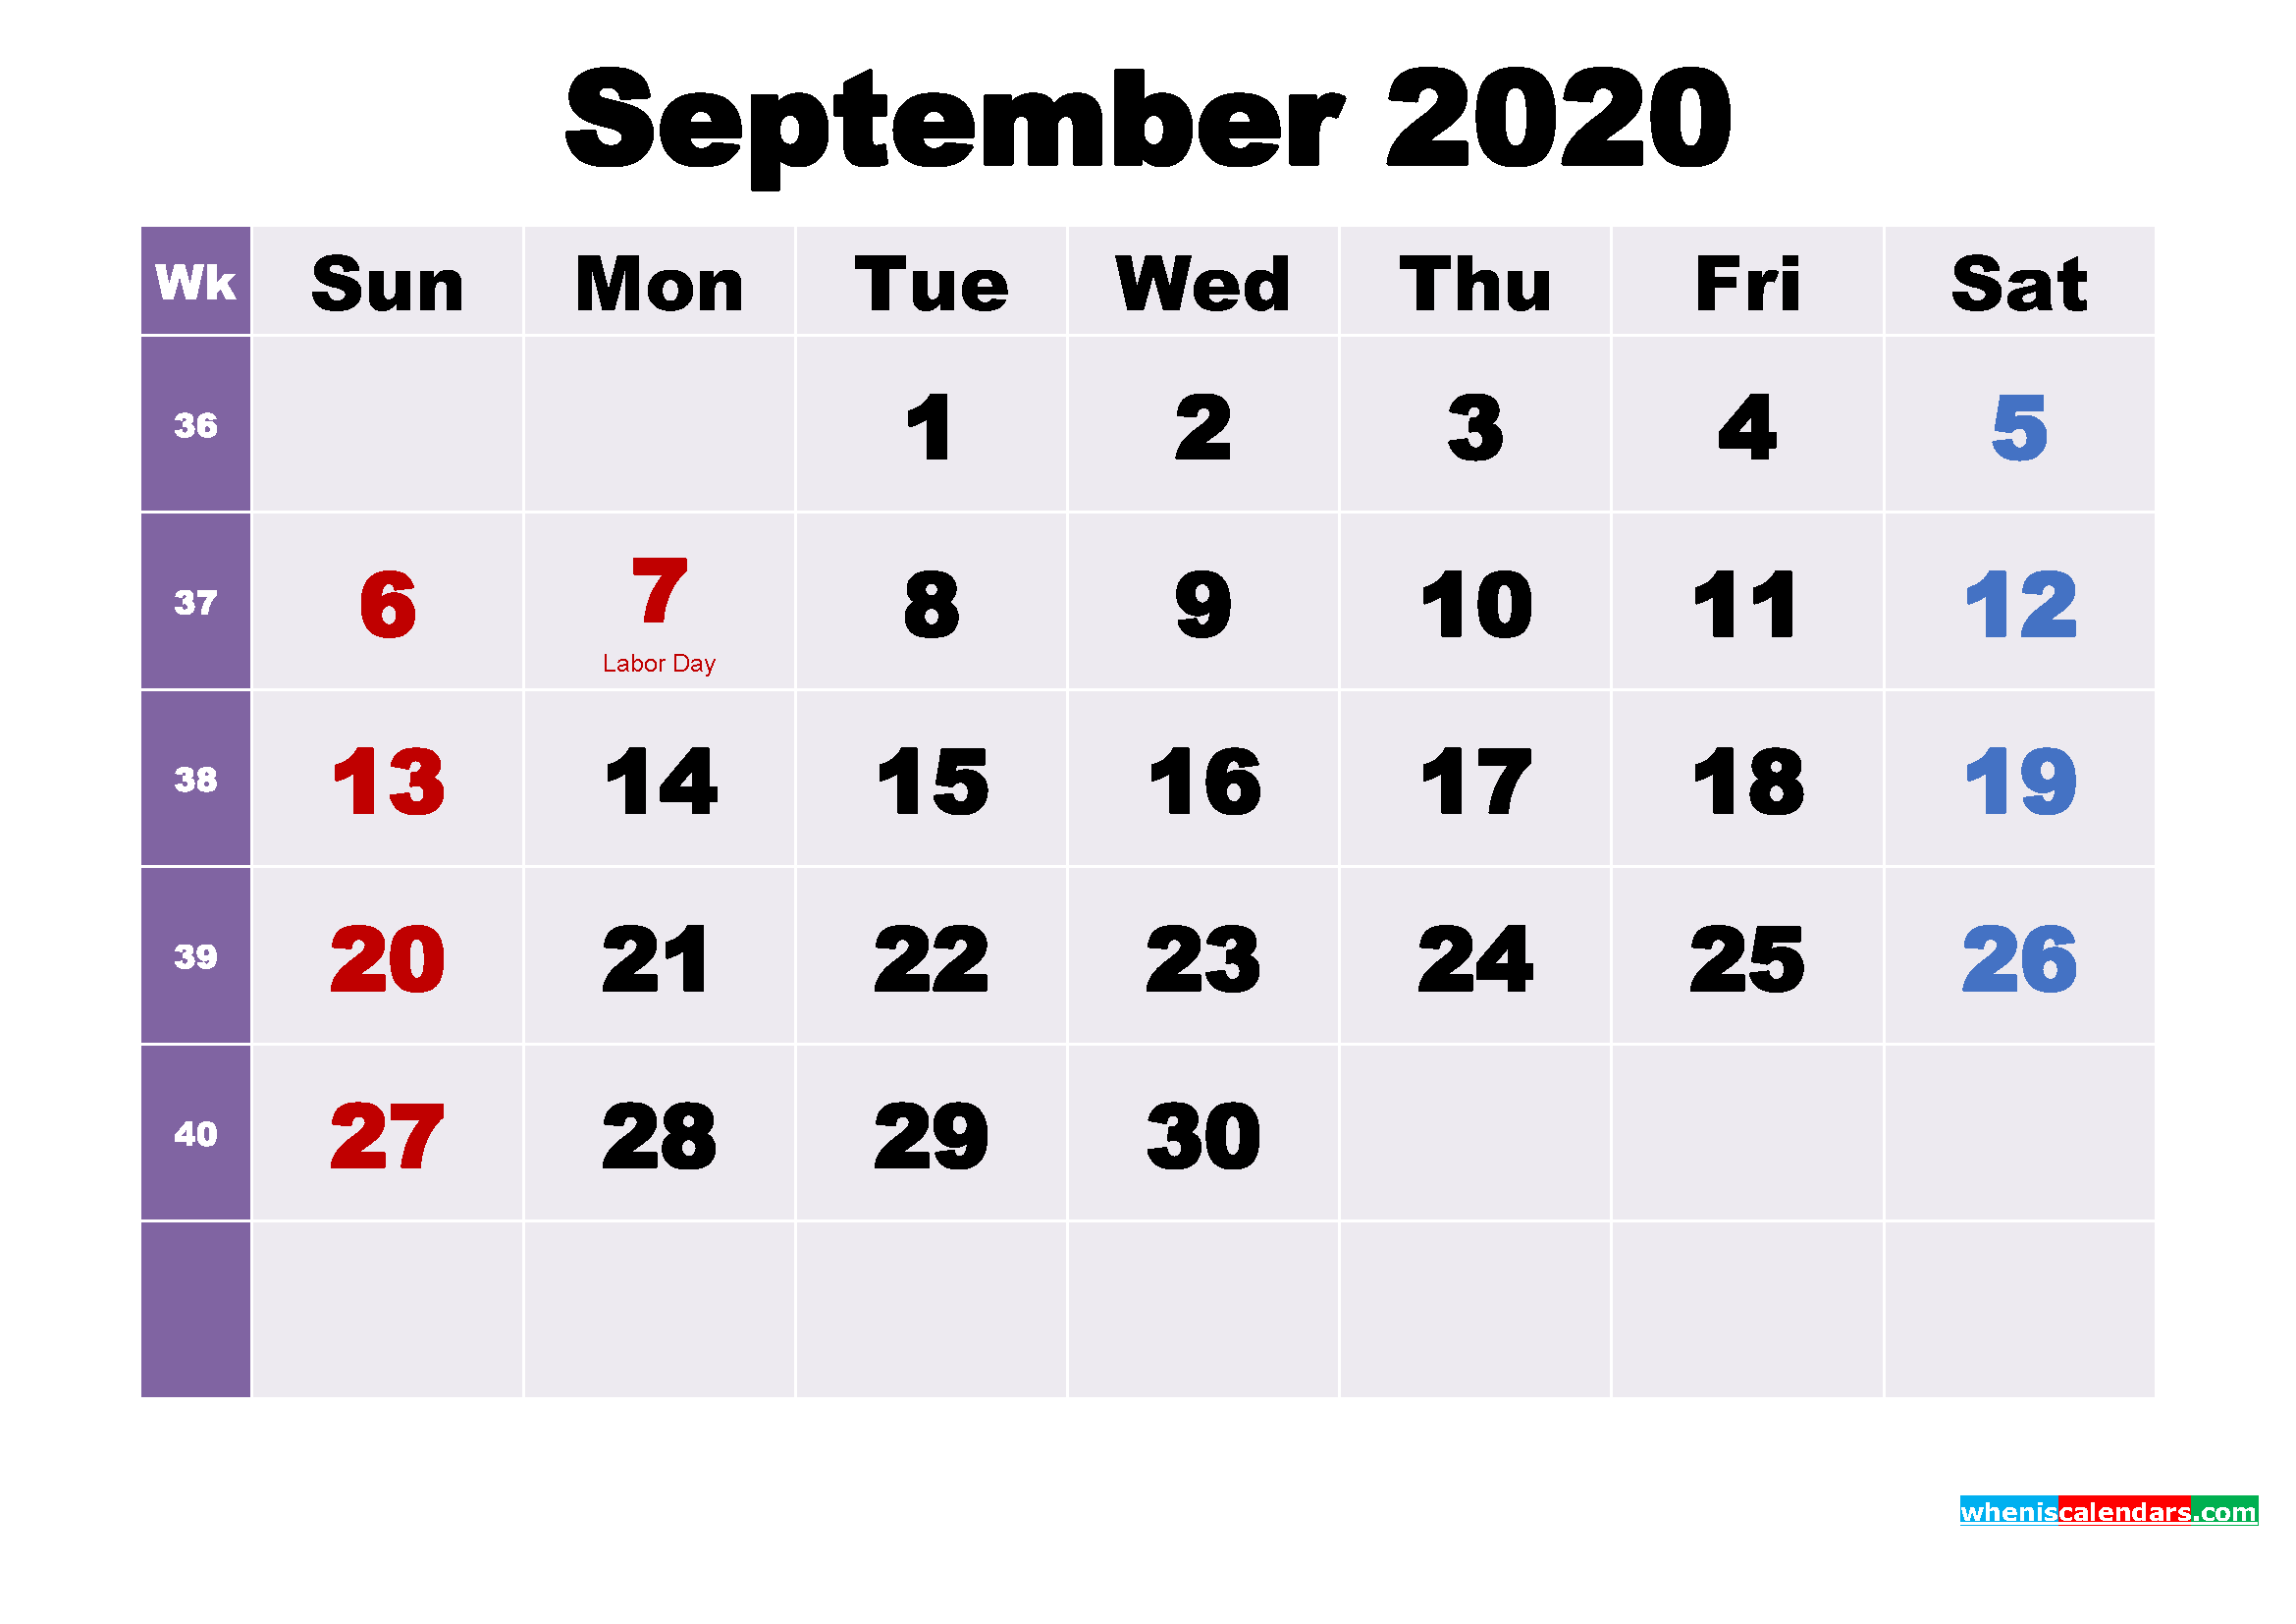 Printable 2020 Calendar by Month September